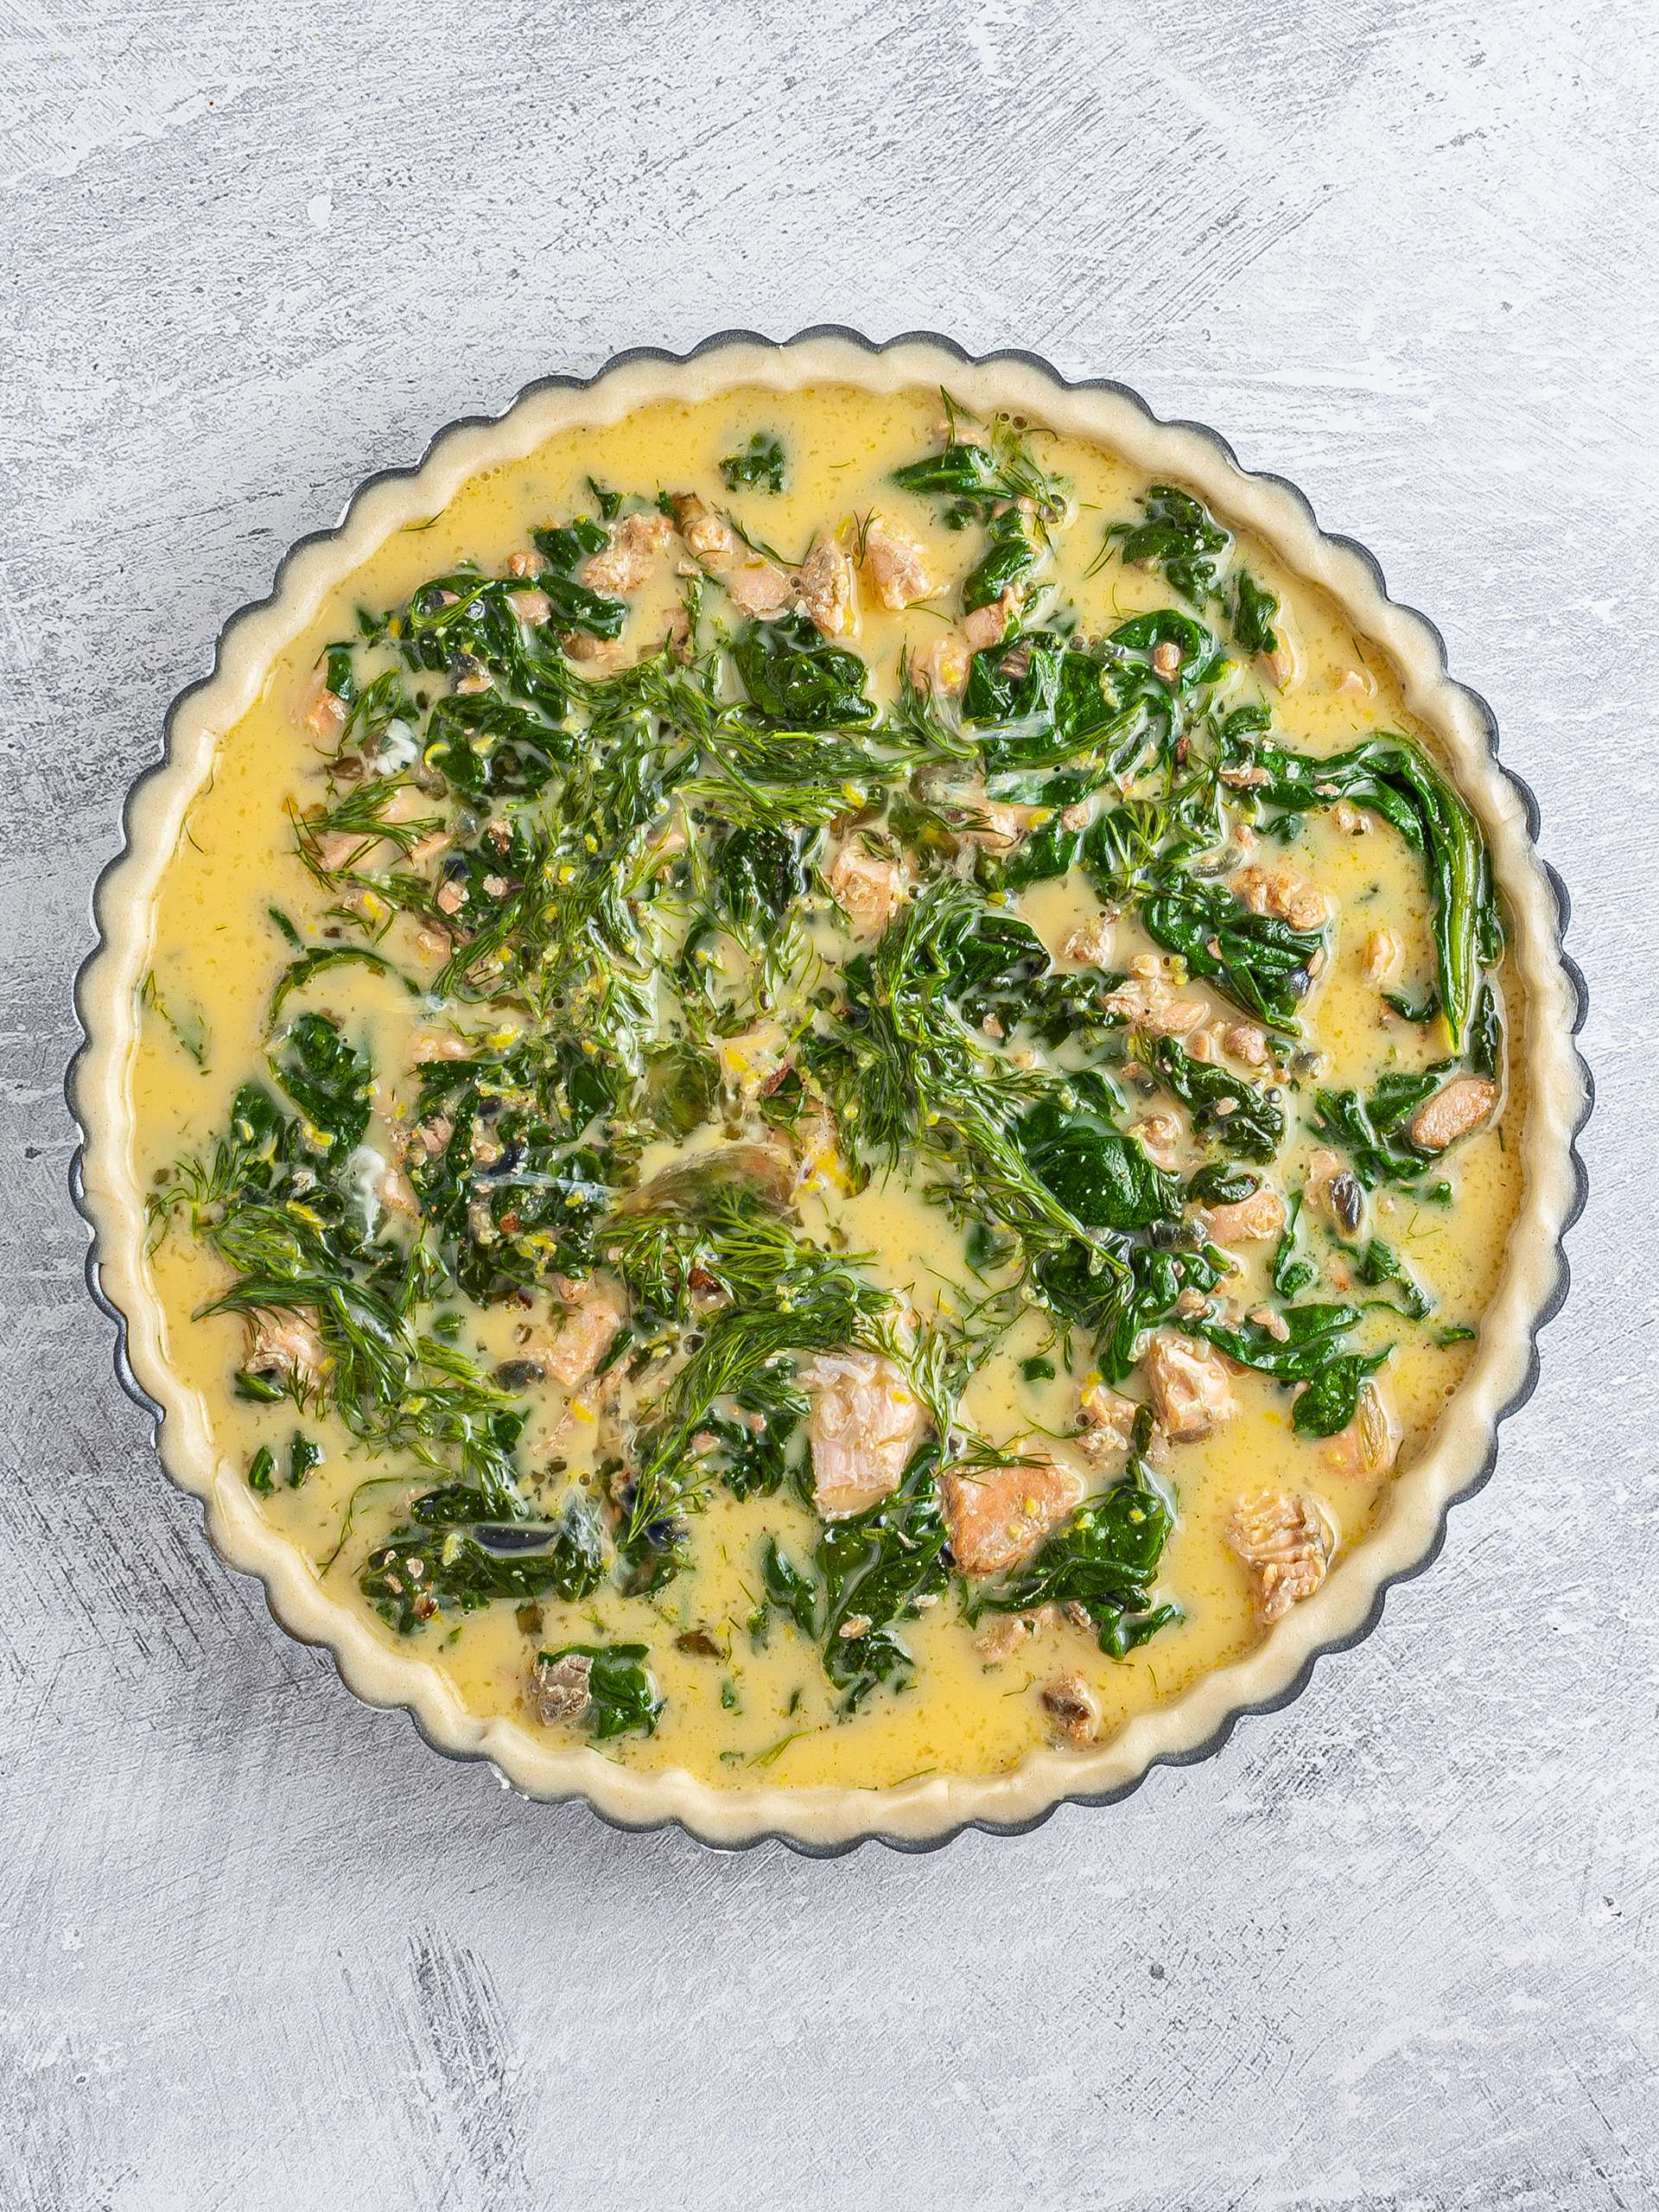 Salmon filling in the pie dish